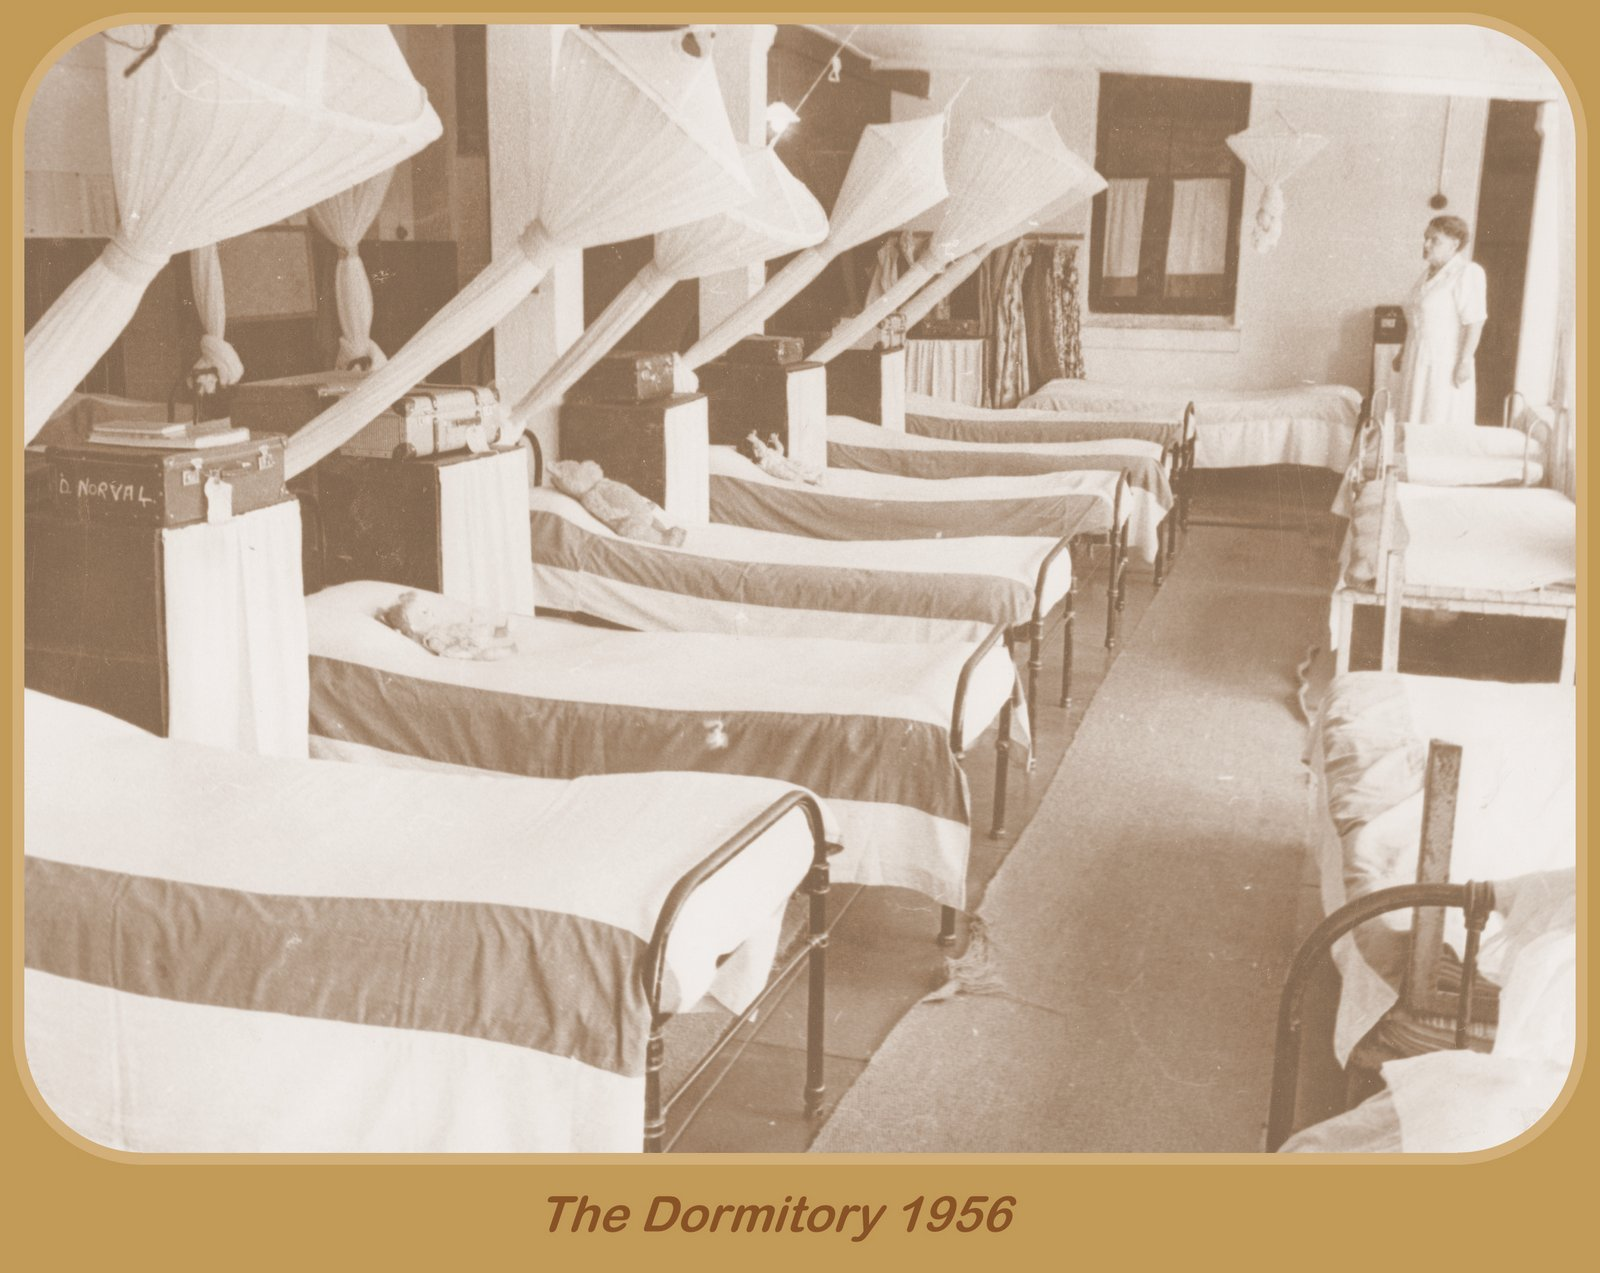 The Dormitory